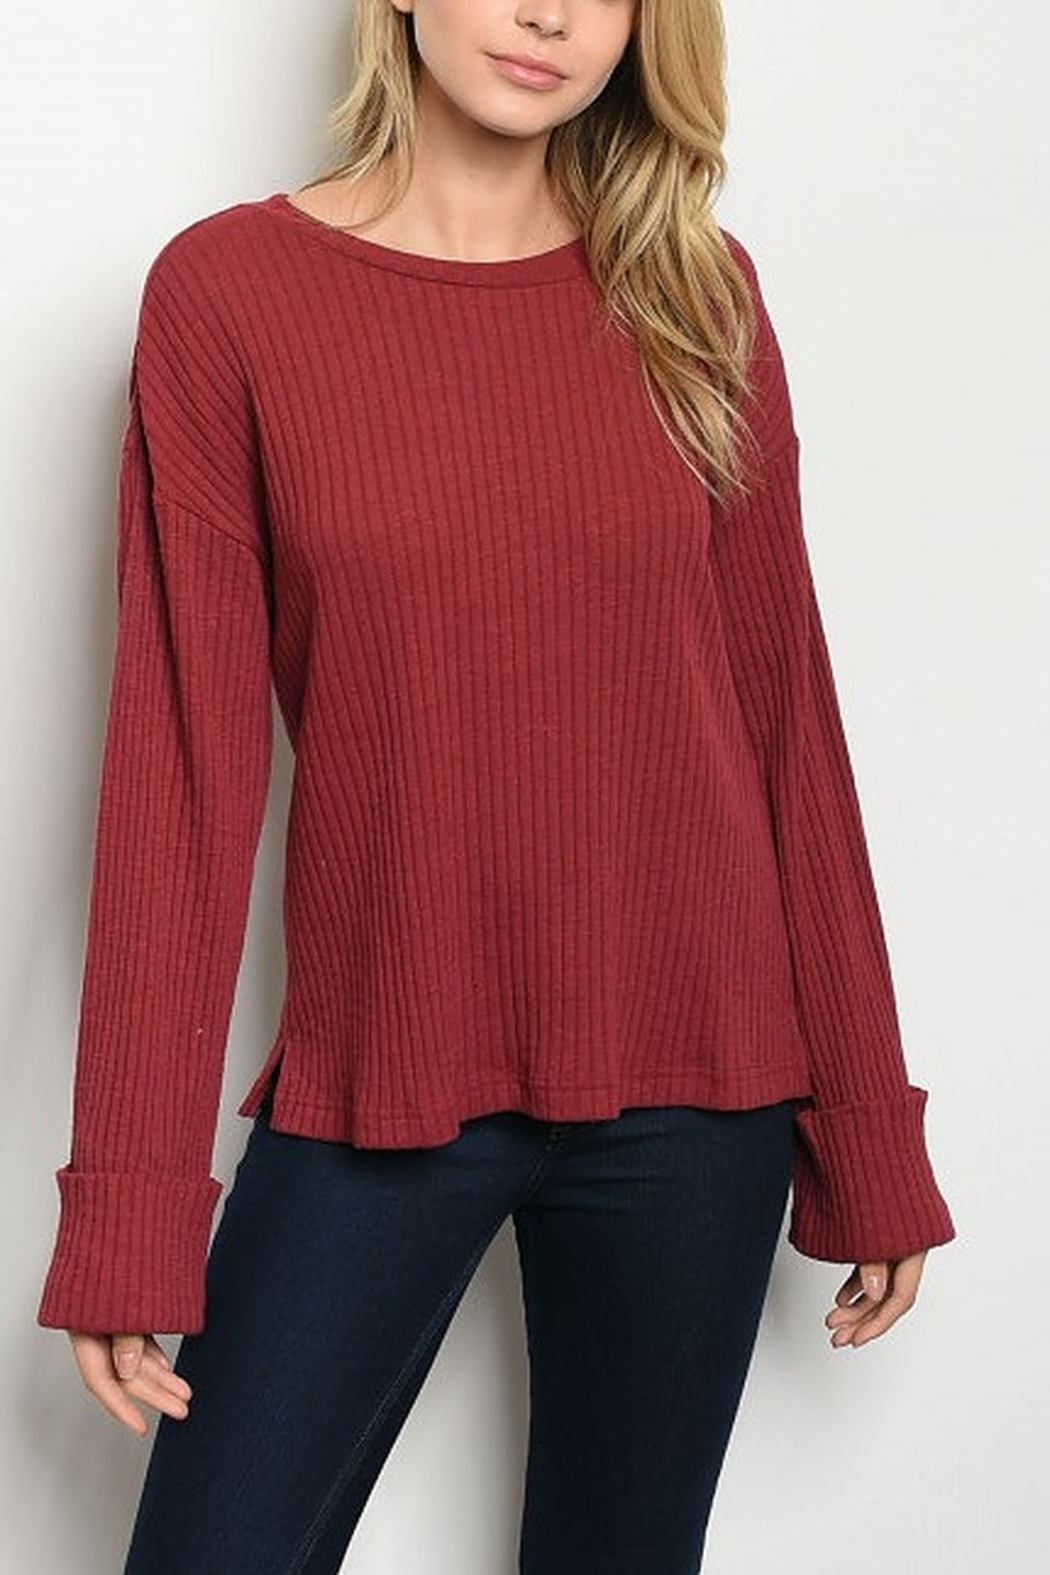 Lyn-Maree's  Burgundy Top - Main Image